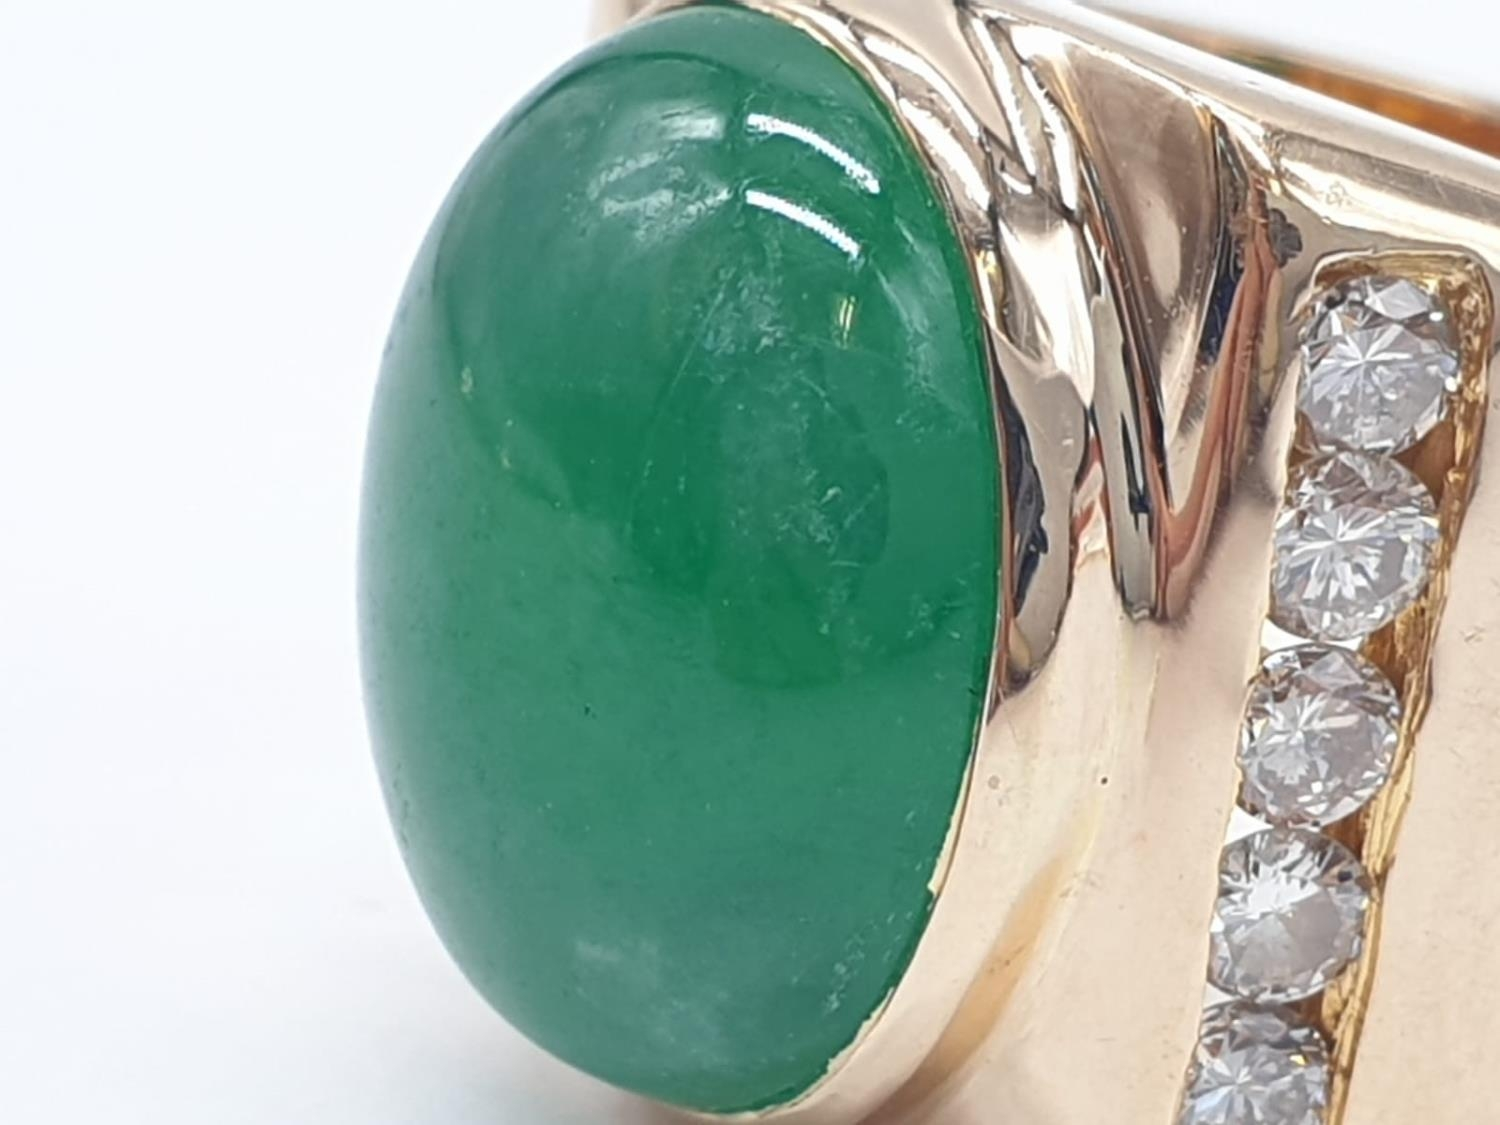 18ct Gold ring with natural jade stone and diamond shoulders. 16.2g total weight and size R. - Image 3 of 8